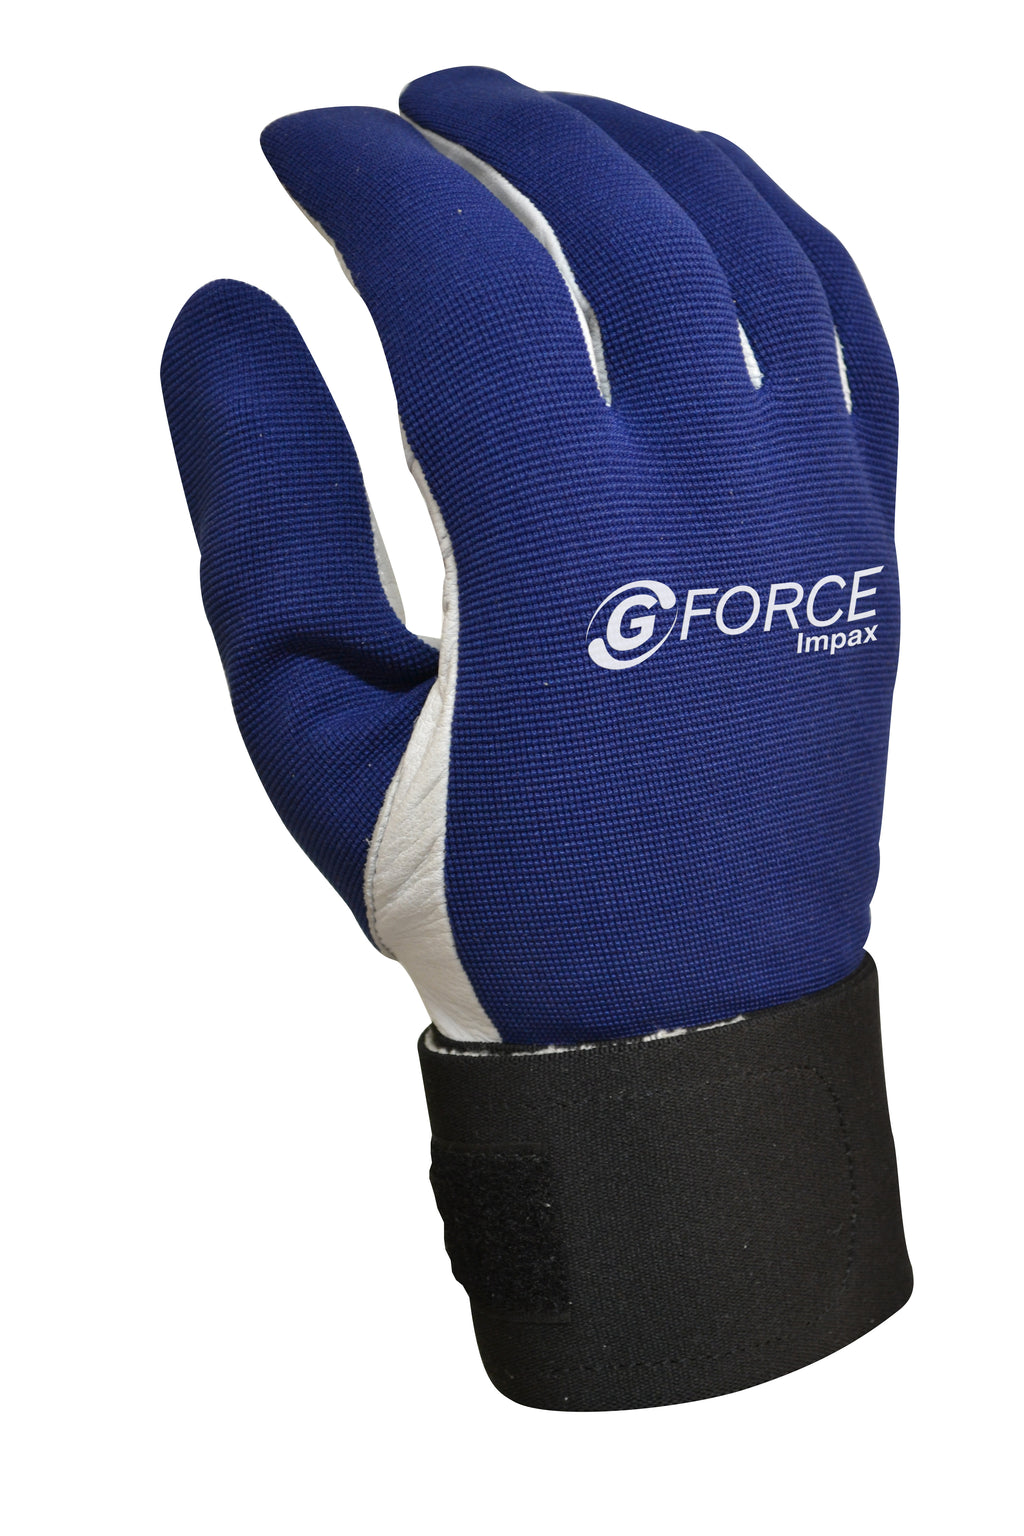 G-Force Anti-Vibration Mechanics Gloves